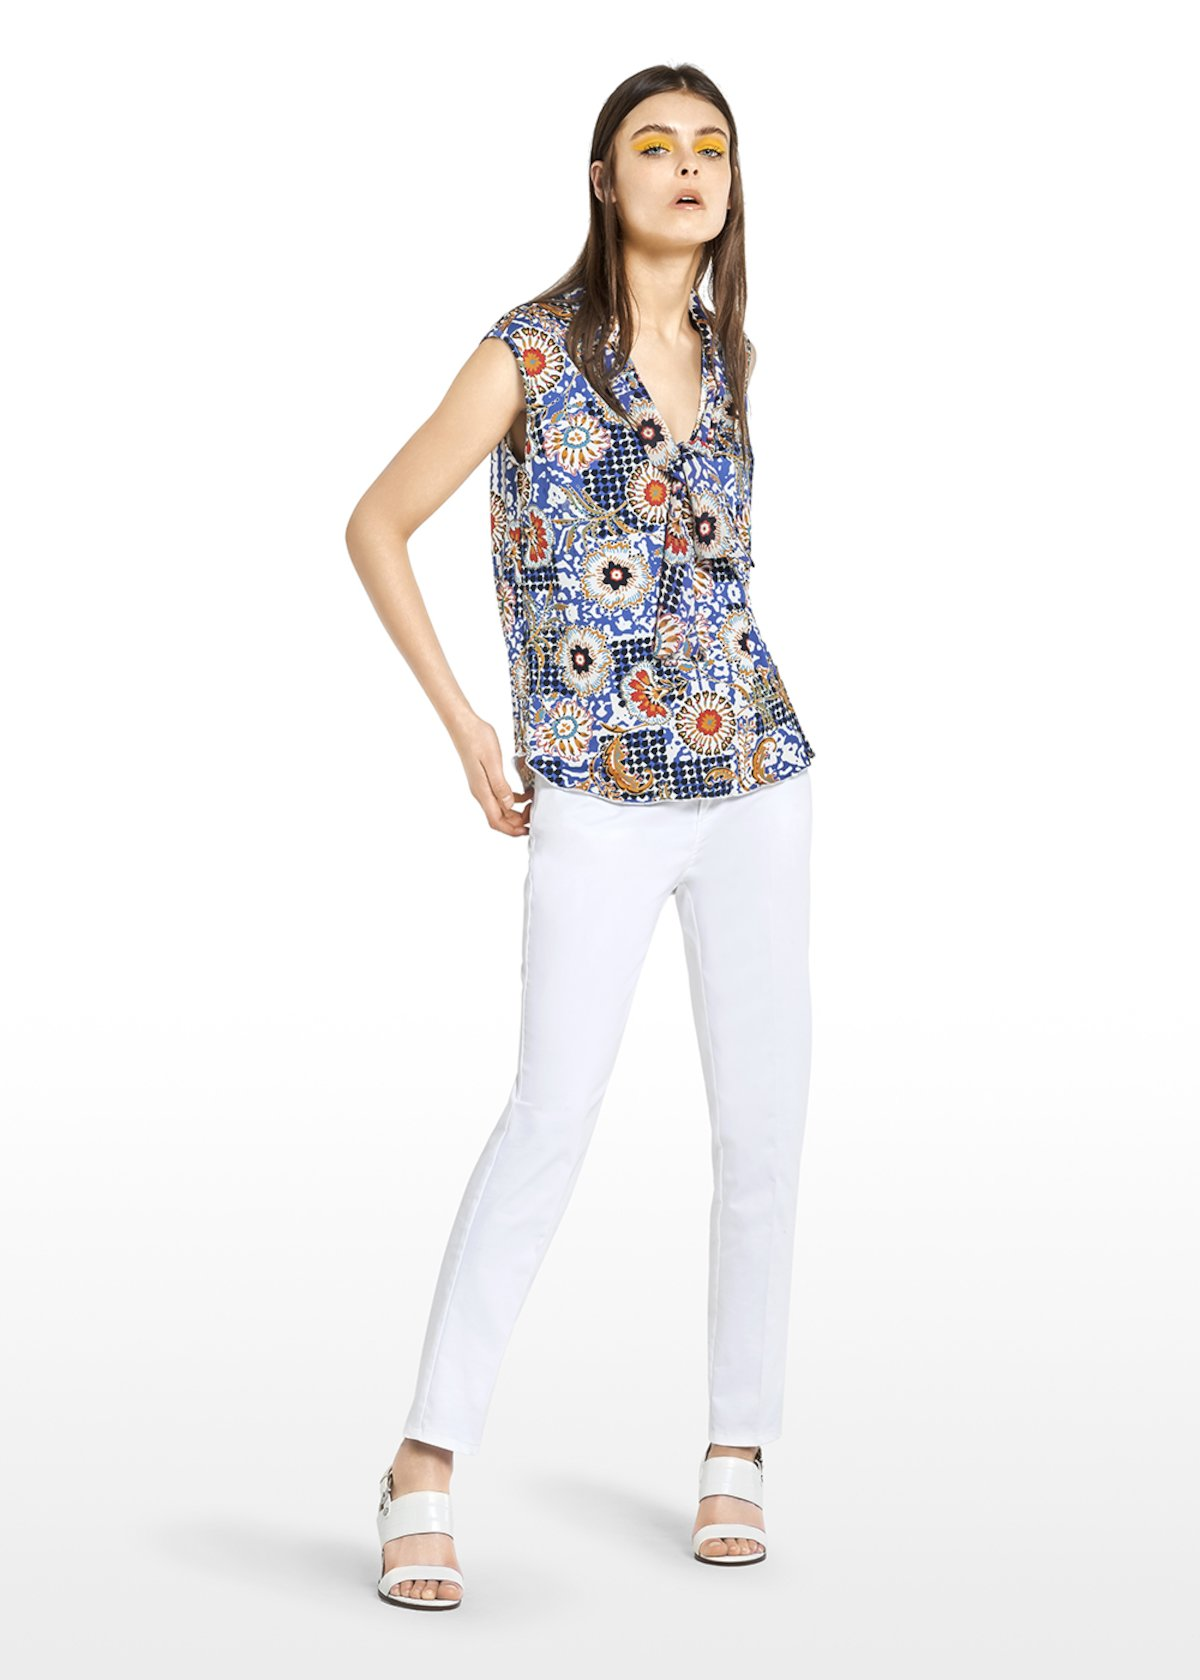 Taty sleeveless top Ankara print - Avion / White Fantasia - Woman